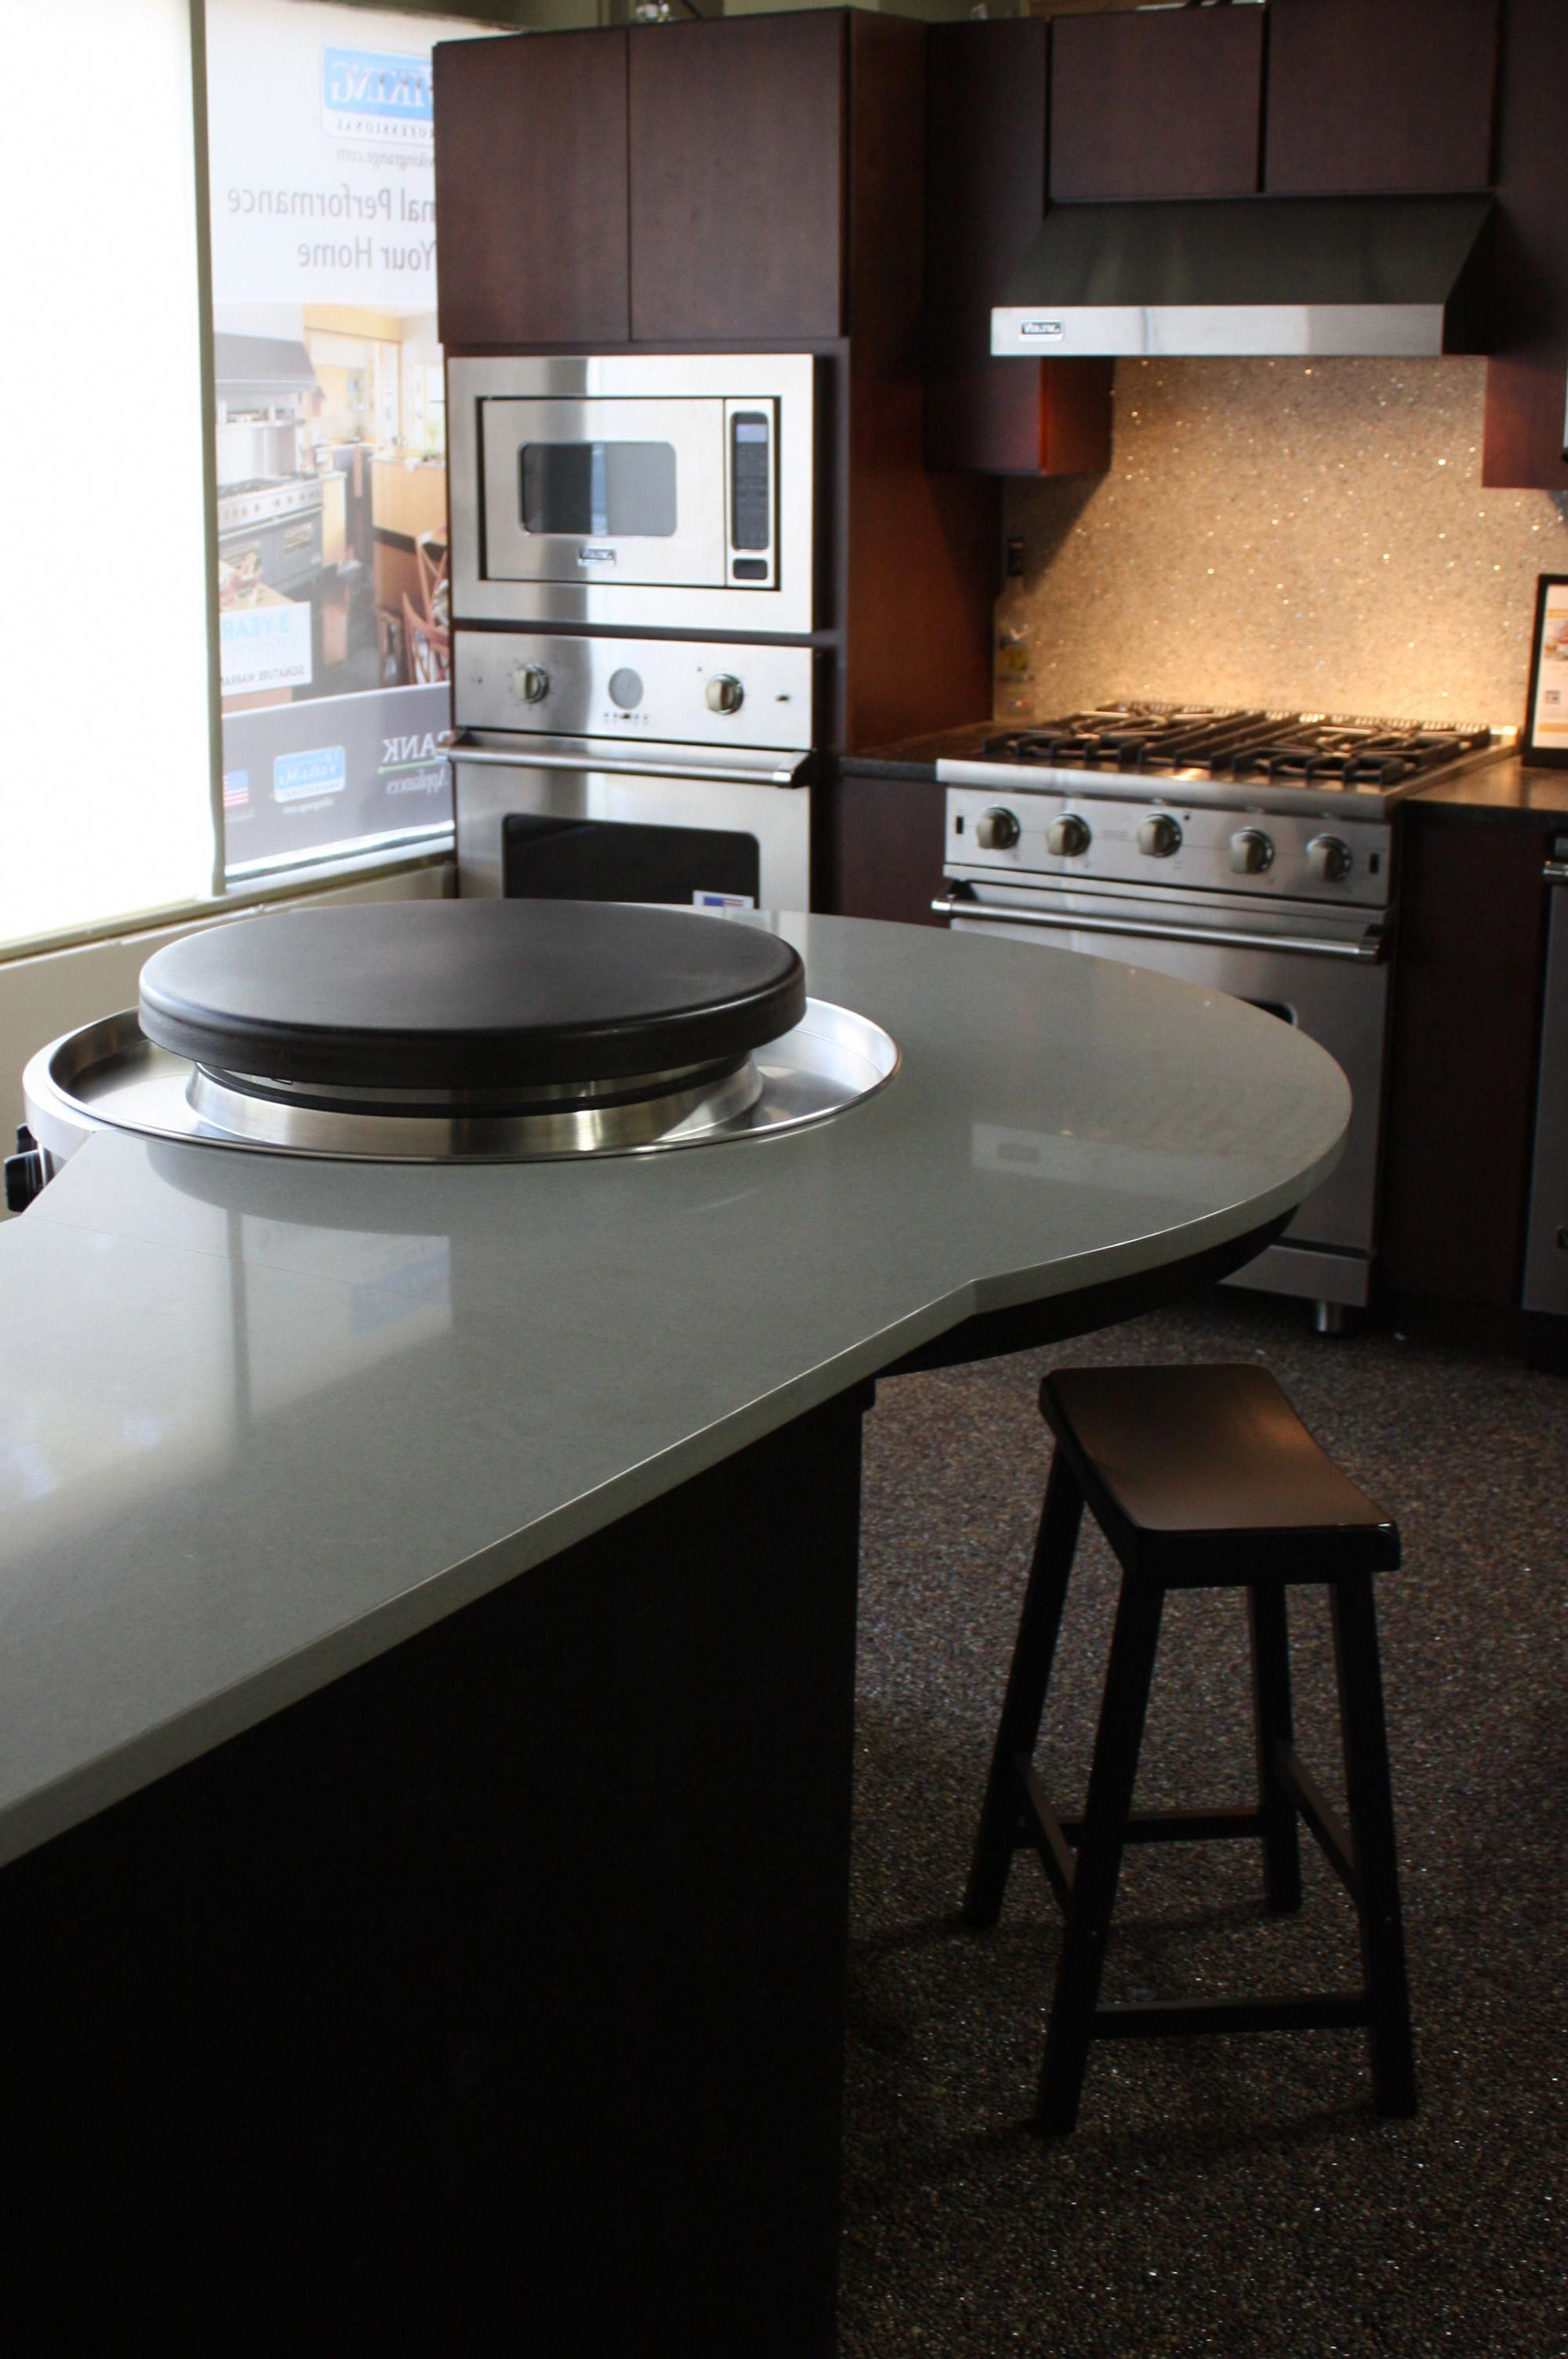 Appliances Portland Or Evo Built In Affinity Circular Cooktop At Eastbank Appliance In